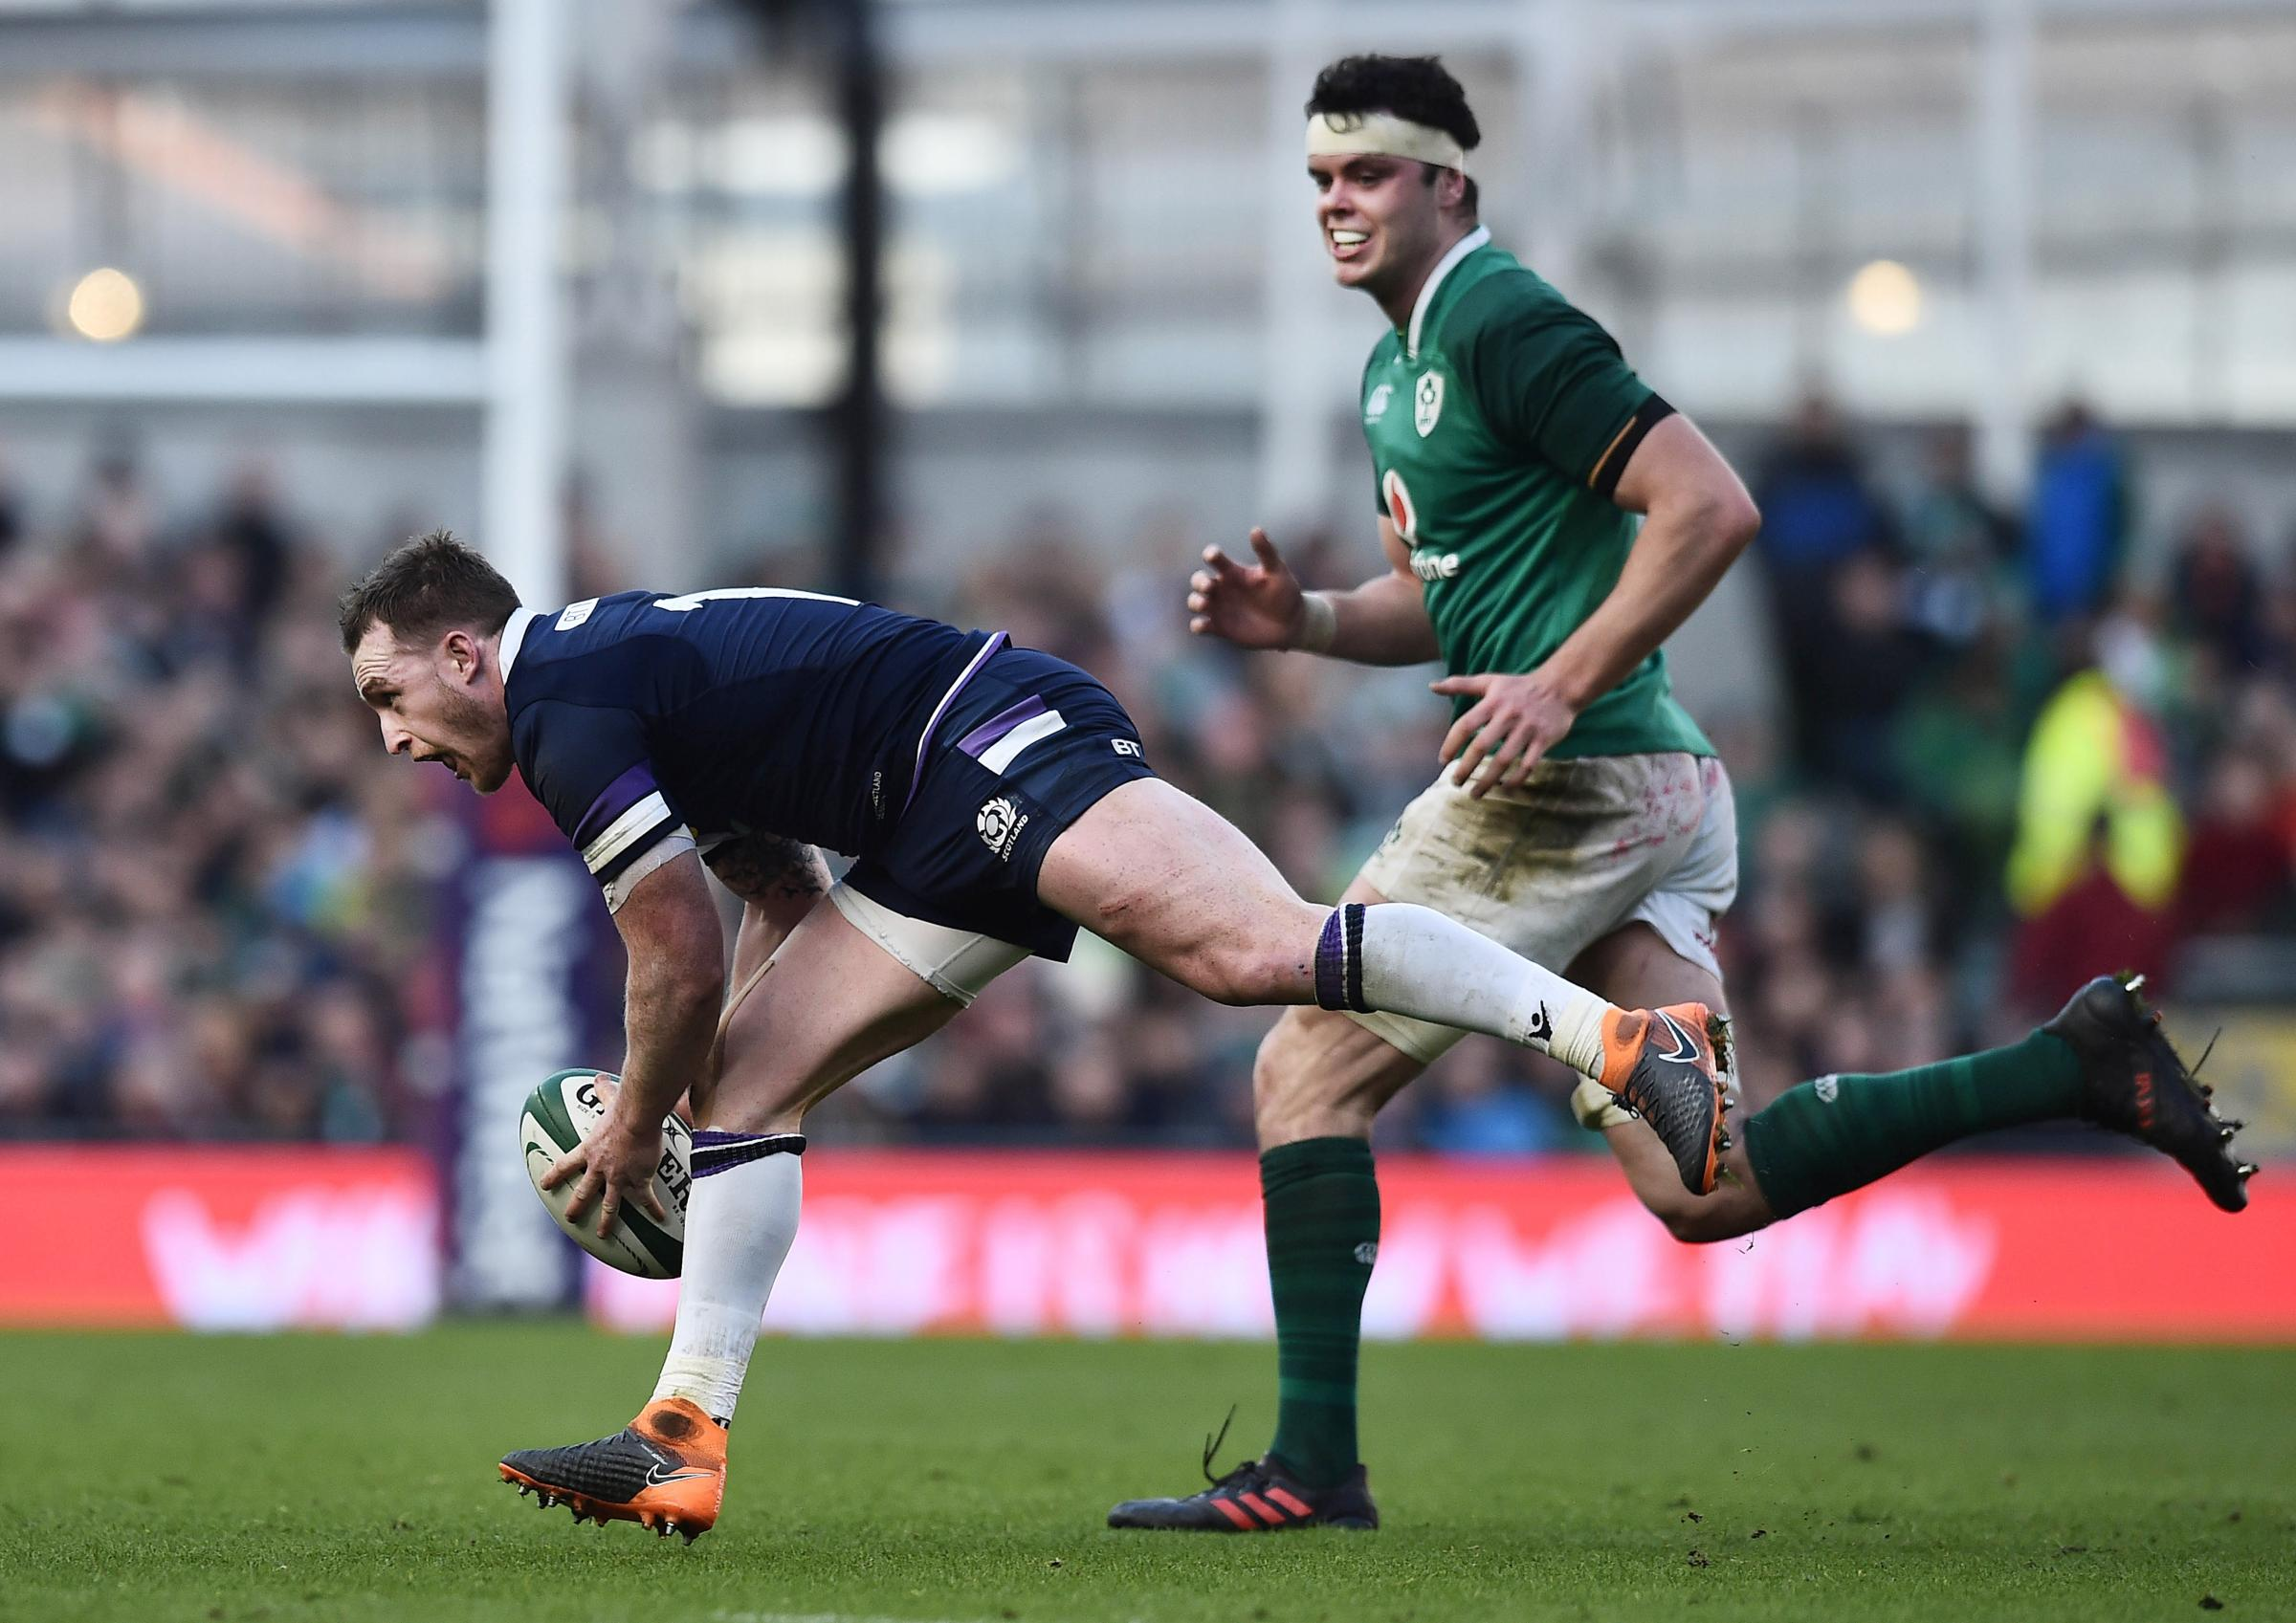 Two-time player of the championship Stuart Hogg was among the culprits as Scotland spurned chances